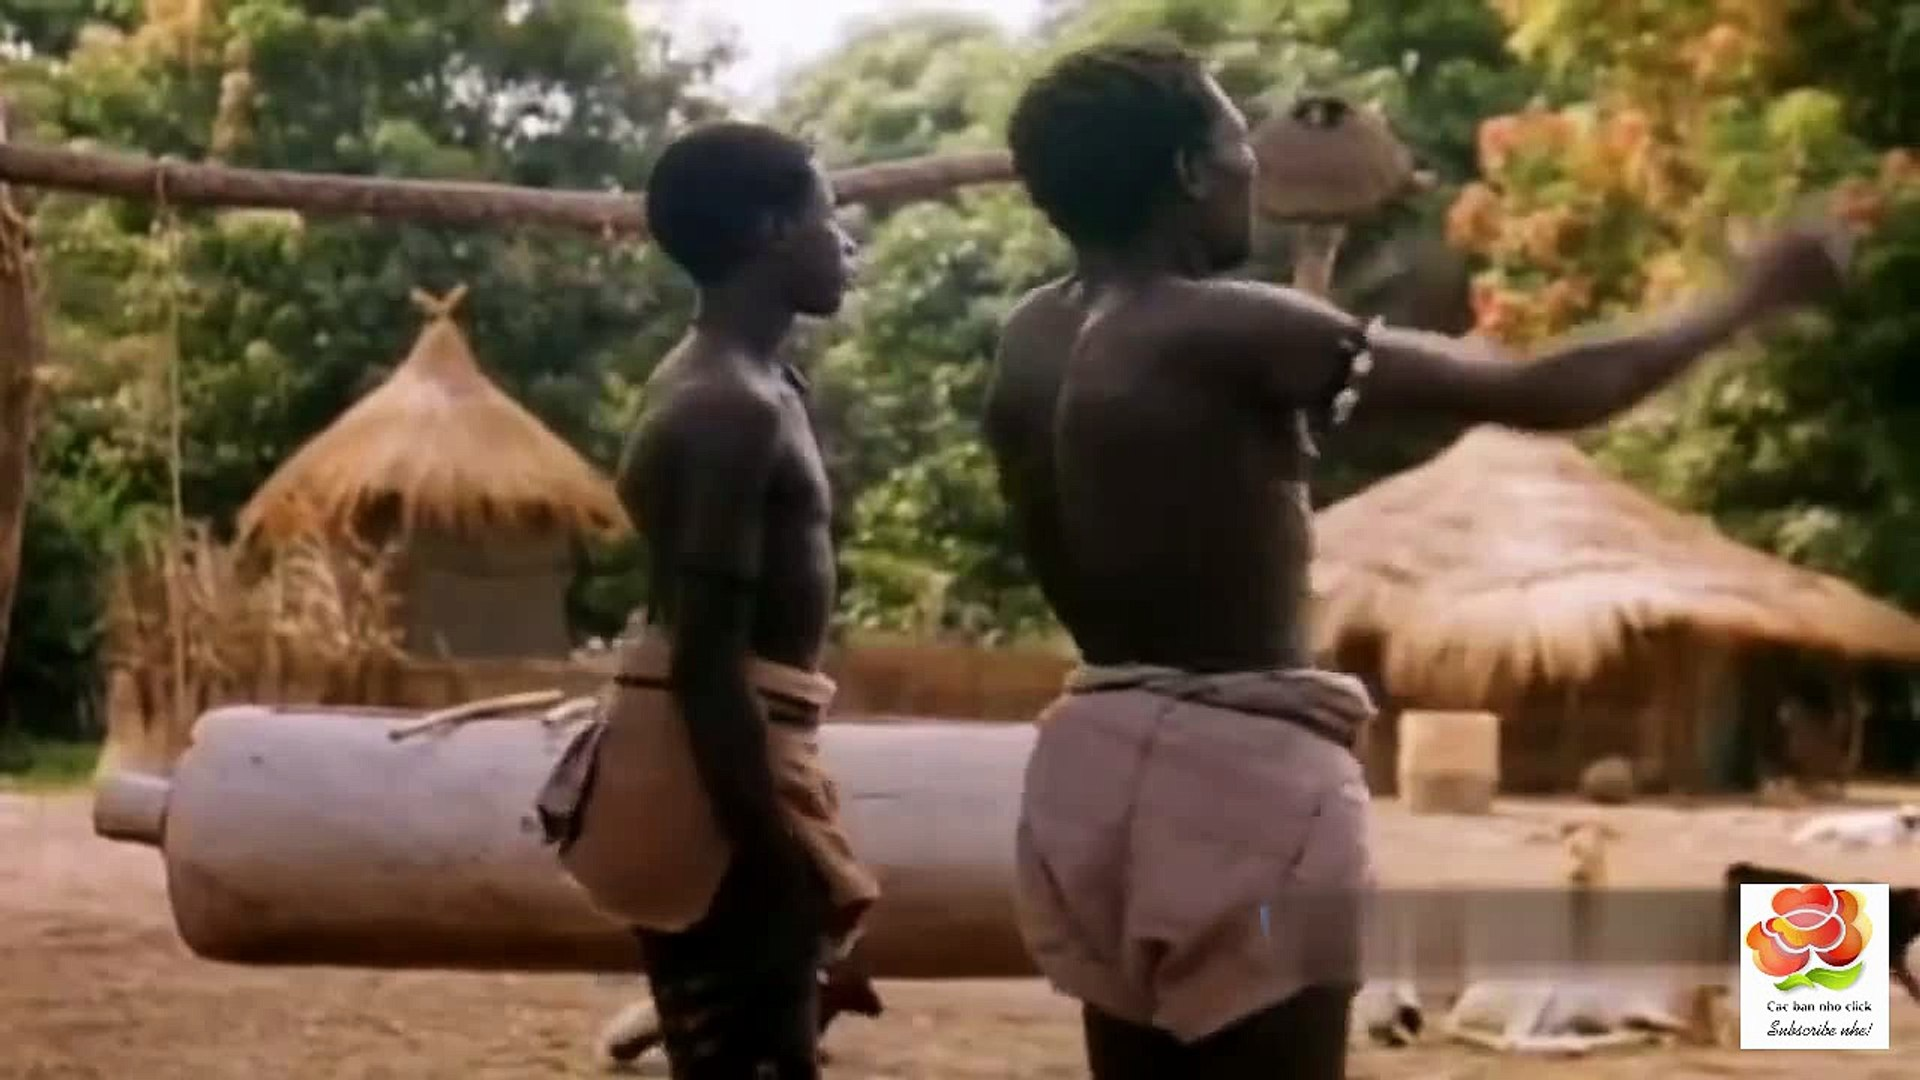 Documentary - The ritual of praying for rain and toxic weird tribe in Africa